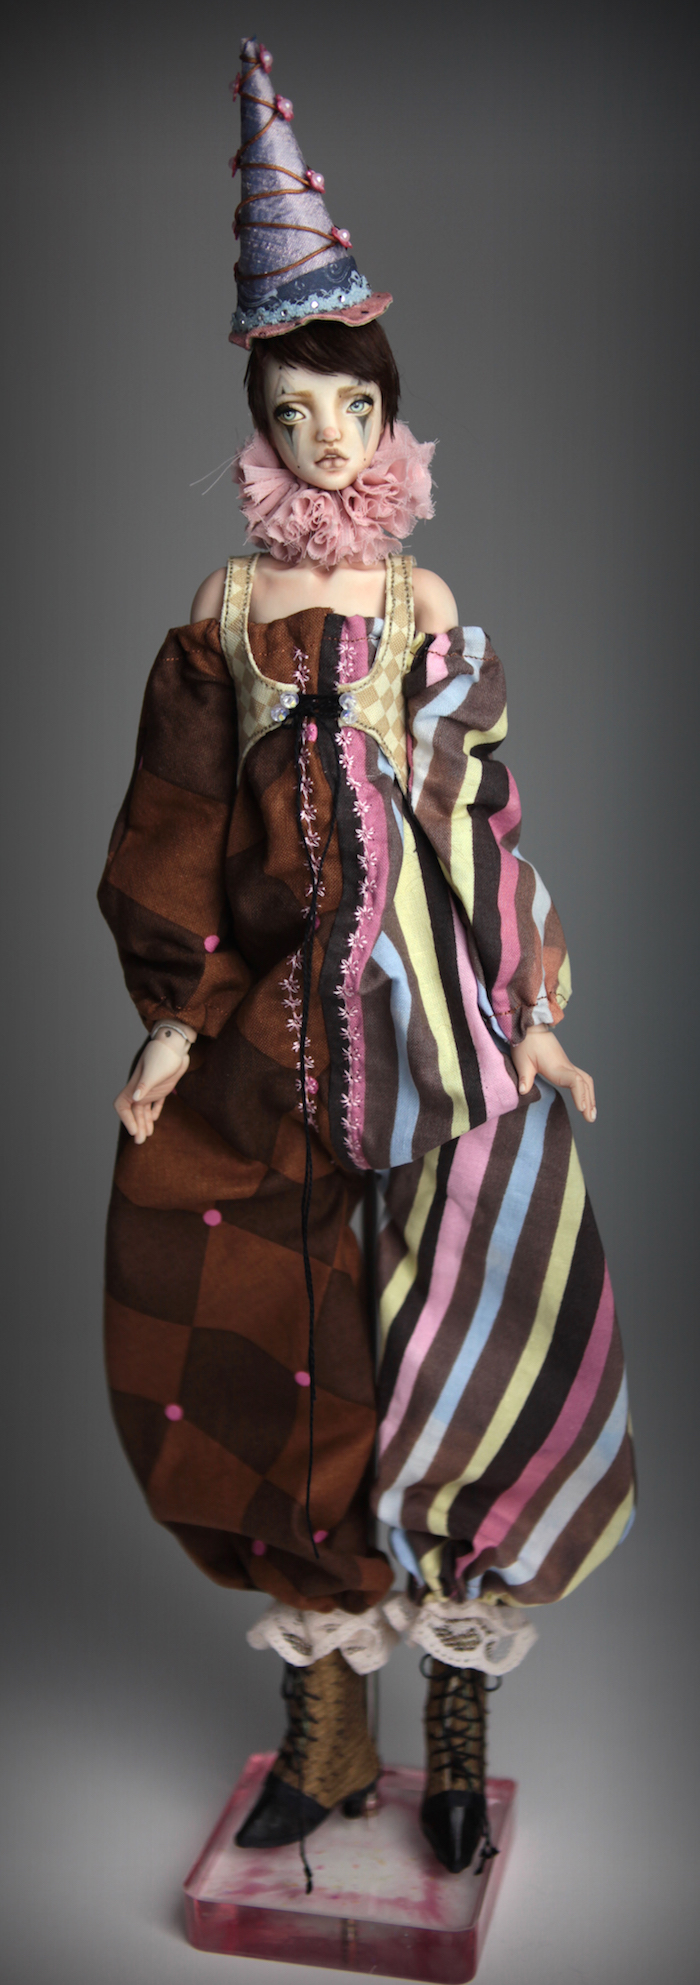 Clown Harlequin BJD Doll Ball Jointed Forgotten Hearts Party Hats Clown Hats FHDolls 40 15 Clown Harlequin Alice